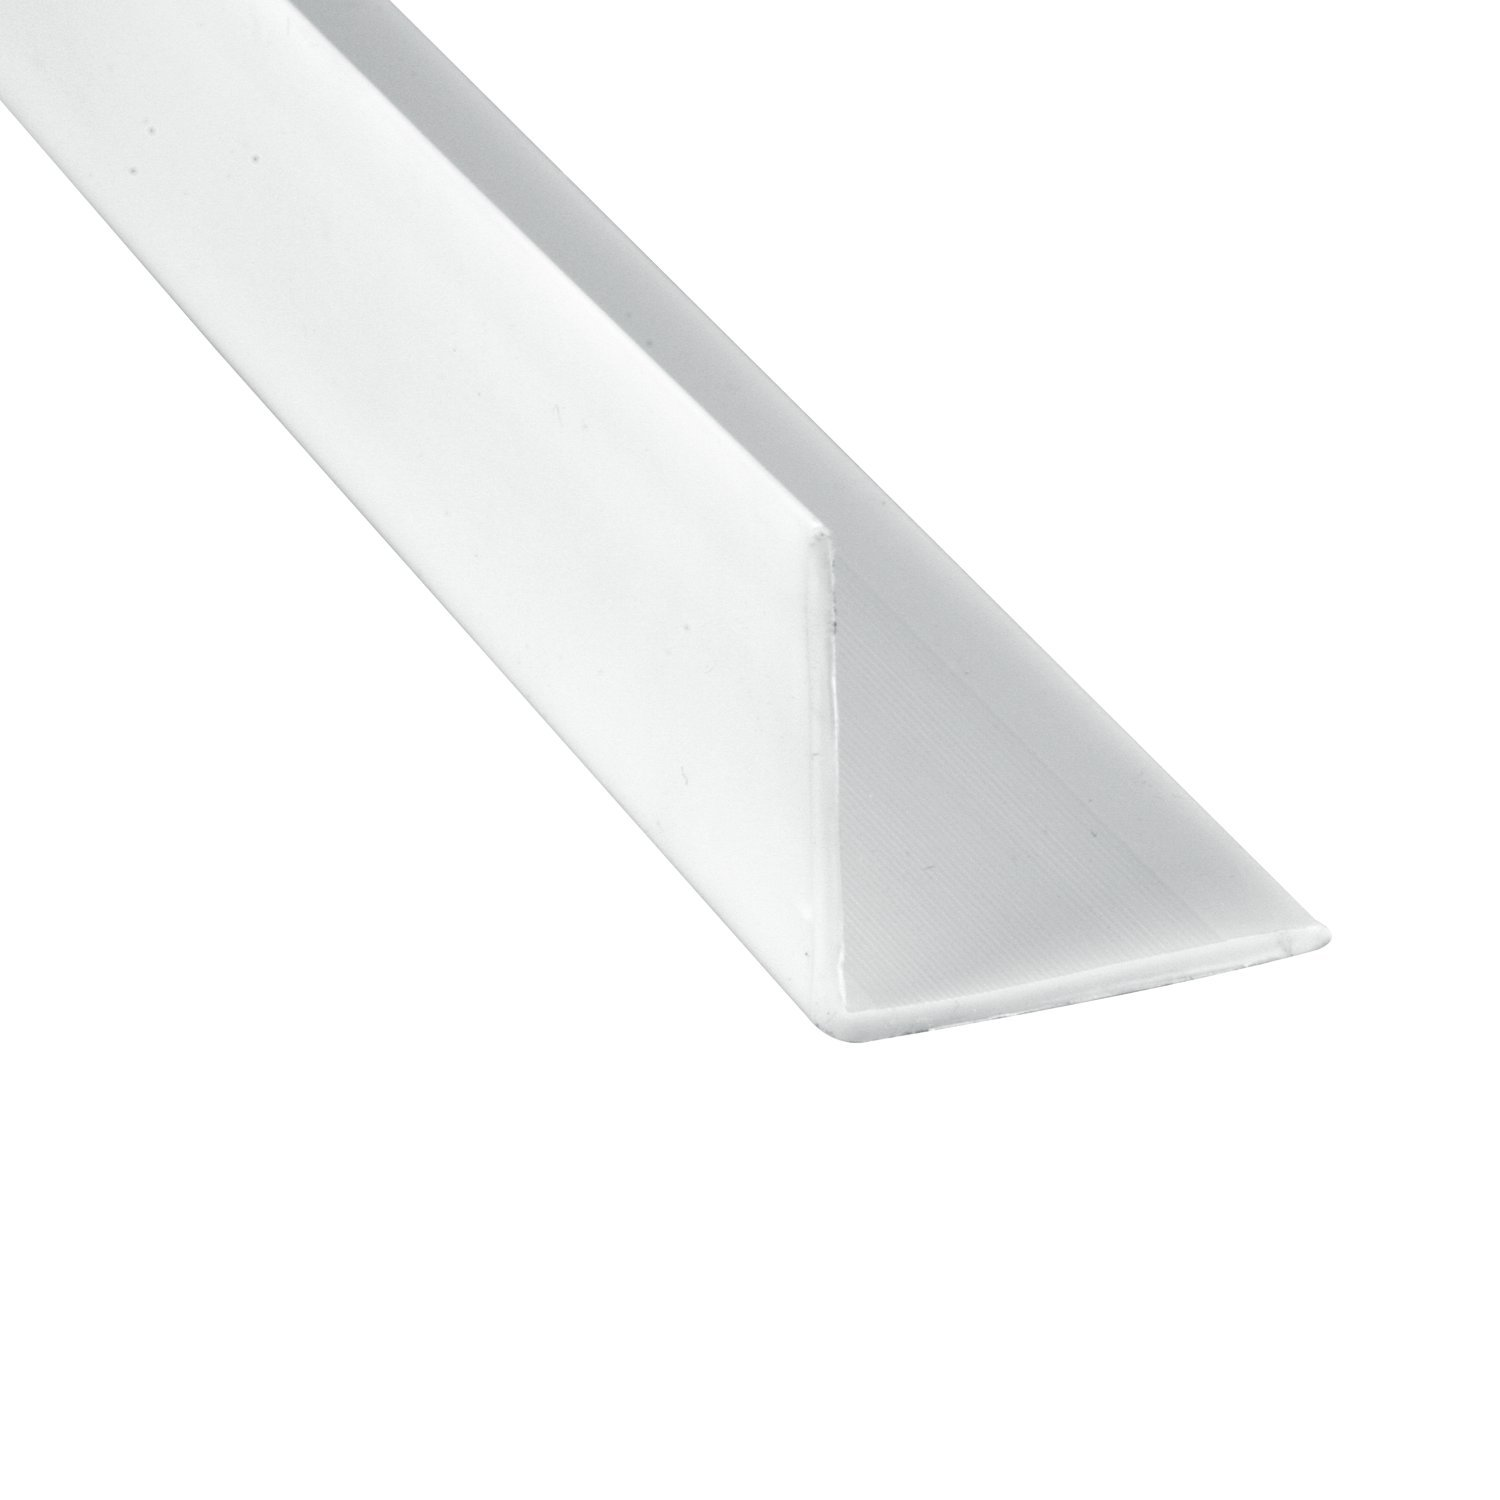 Prime-Line Products Prime-Line MP10069 Corner Shield, 2-1/2 in. x 48 in, Vinyl Construction, White, 6 Piece by PRIME-LINE